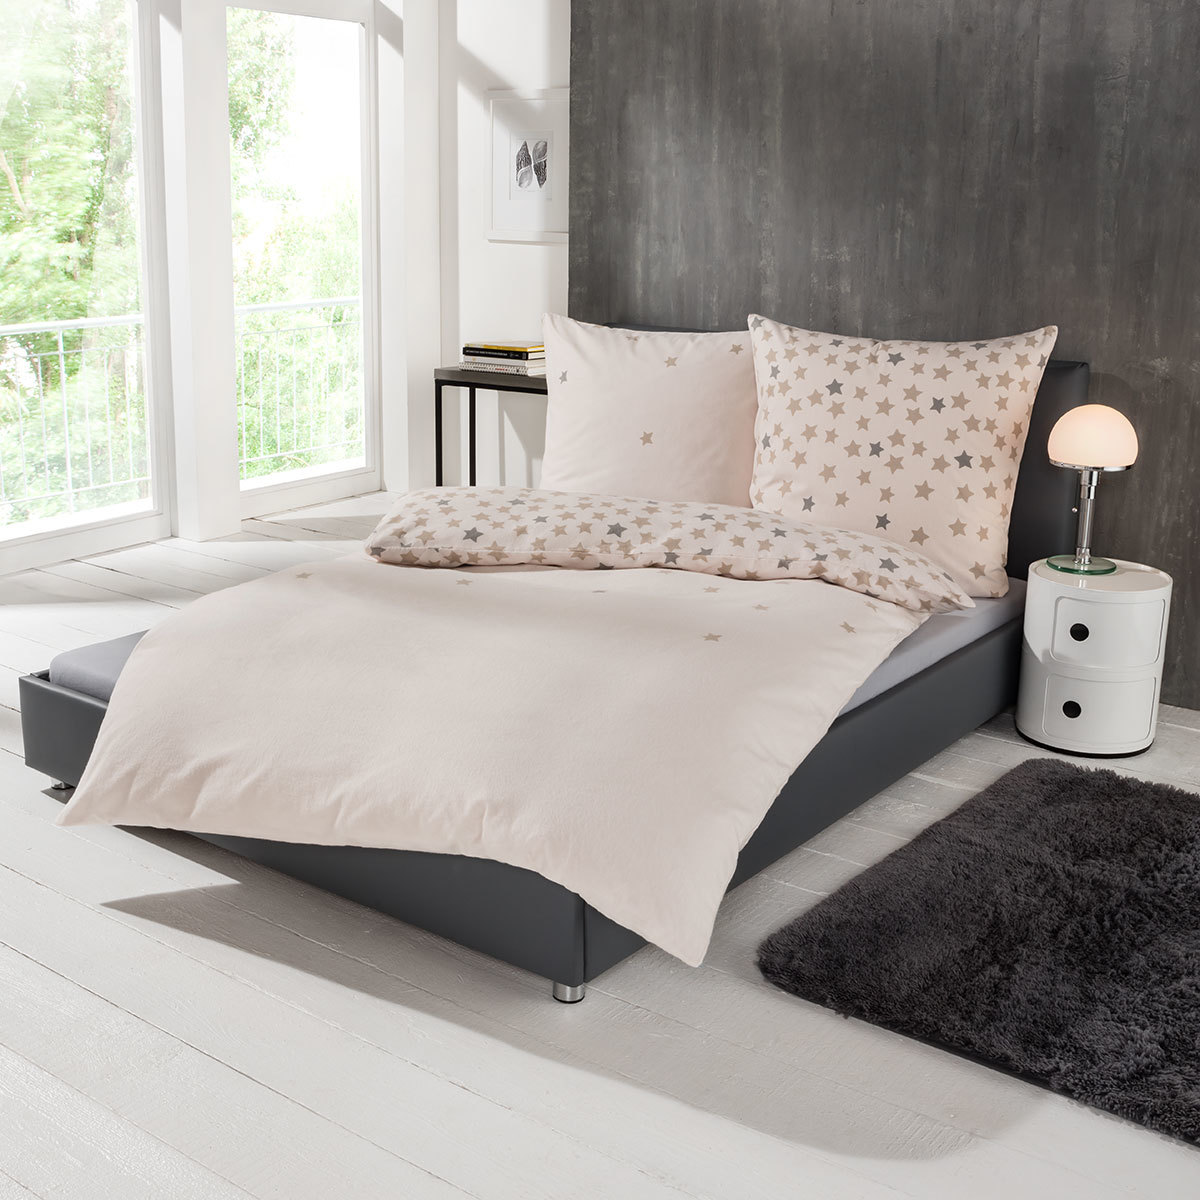 s oliver flanell bettw sche sterne g nstig online kaufen. Black Bedroom Furniture Sets. Home Design Ideas